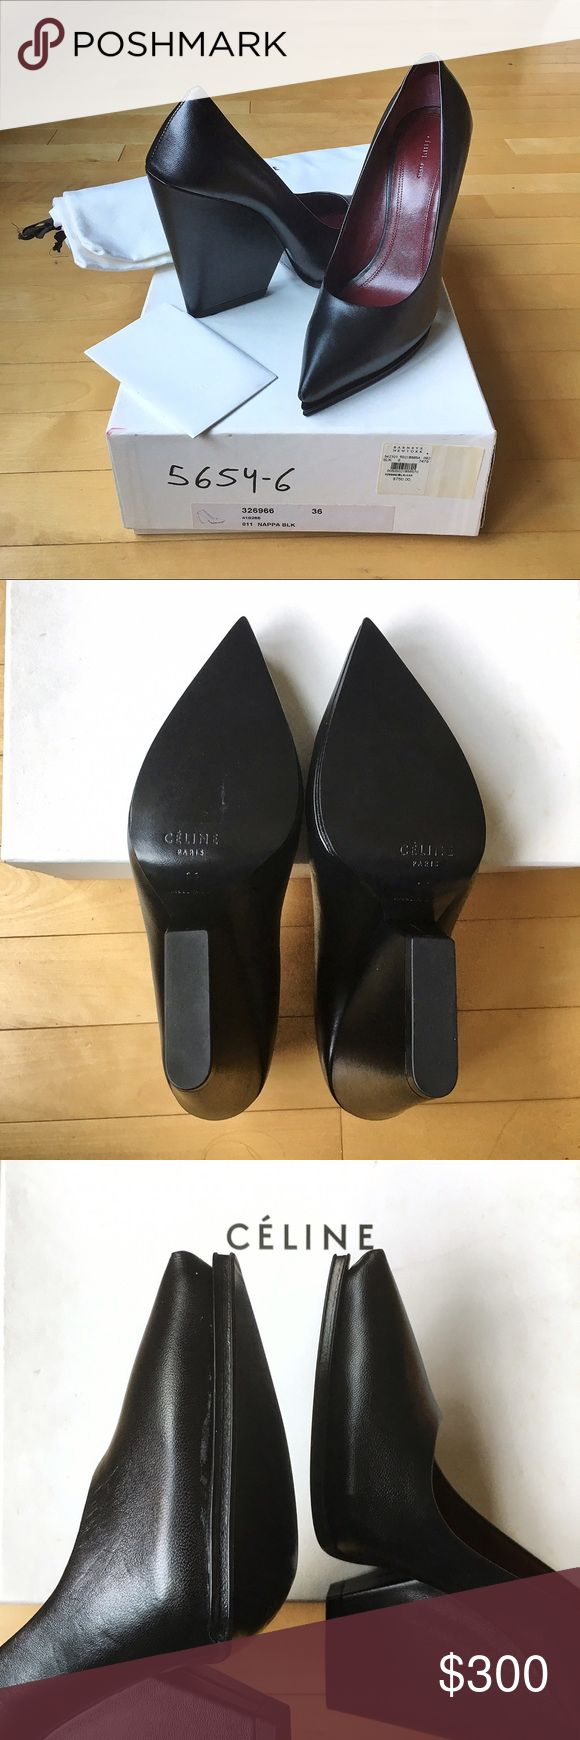 """Céline Black Pointed Wedge Pumps Size: 36; Céline pointed wedge pumps in supple black nappa leather on the exterior and burgundy nappa on the interior. The heel height is approx. 5"""". There's a sliver of discoloration on the left shoe near the inner edge (see 3rd photo), it was there when I bought it & you can potentially cover with shoe polish. Will ship with the original box, white Céline care card and shoe bag. One edge of the box is torn but otherwise, the shoes are pristine and never…"""